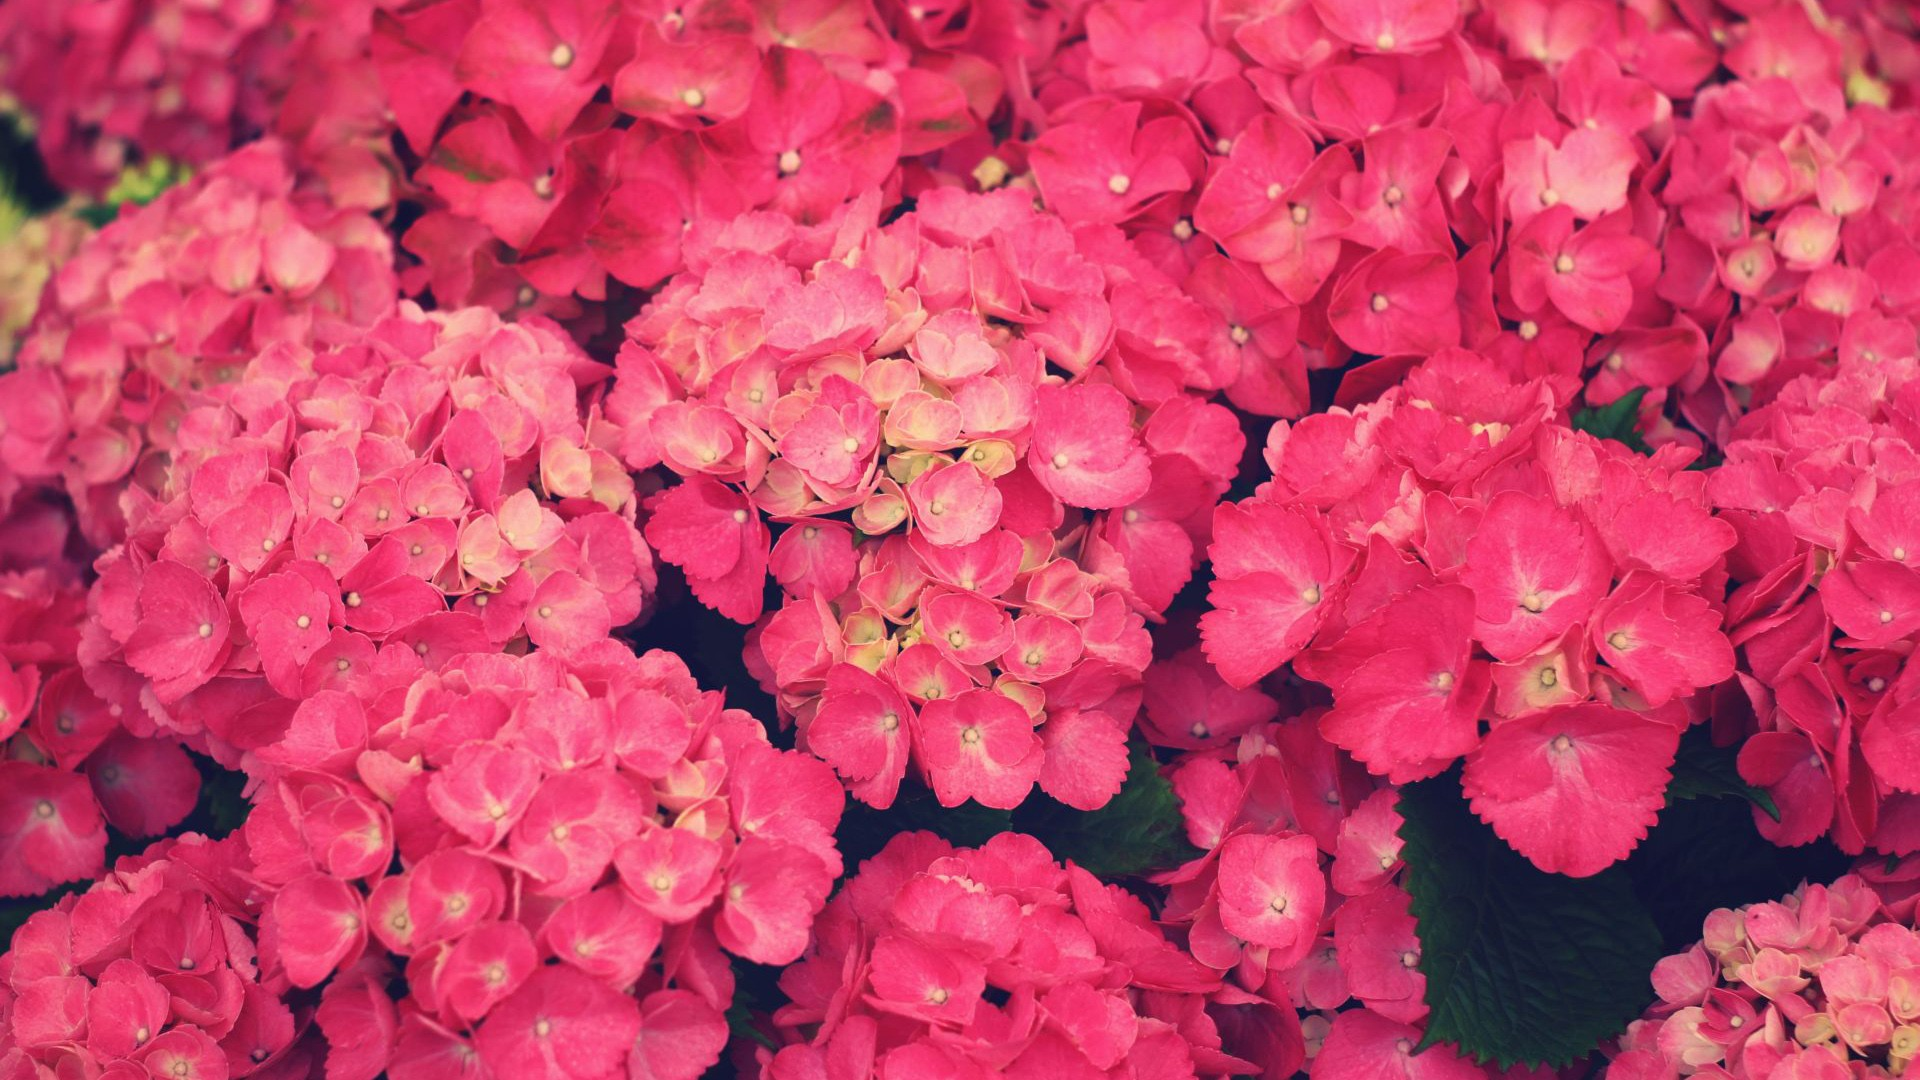 Pink Flowers Wallpaper 1920x1200 51762